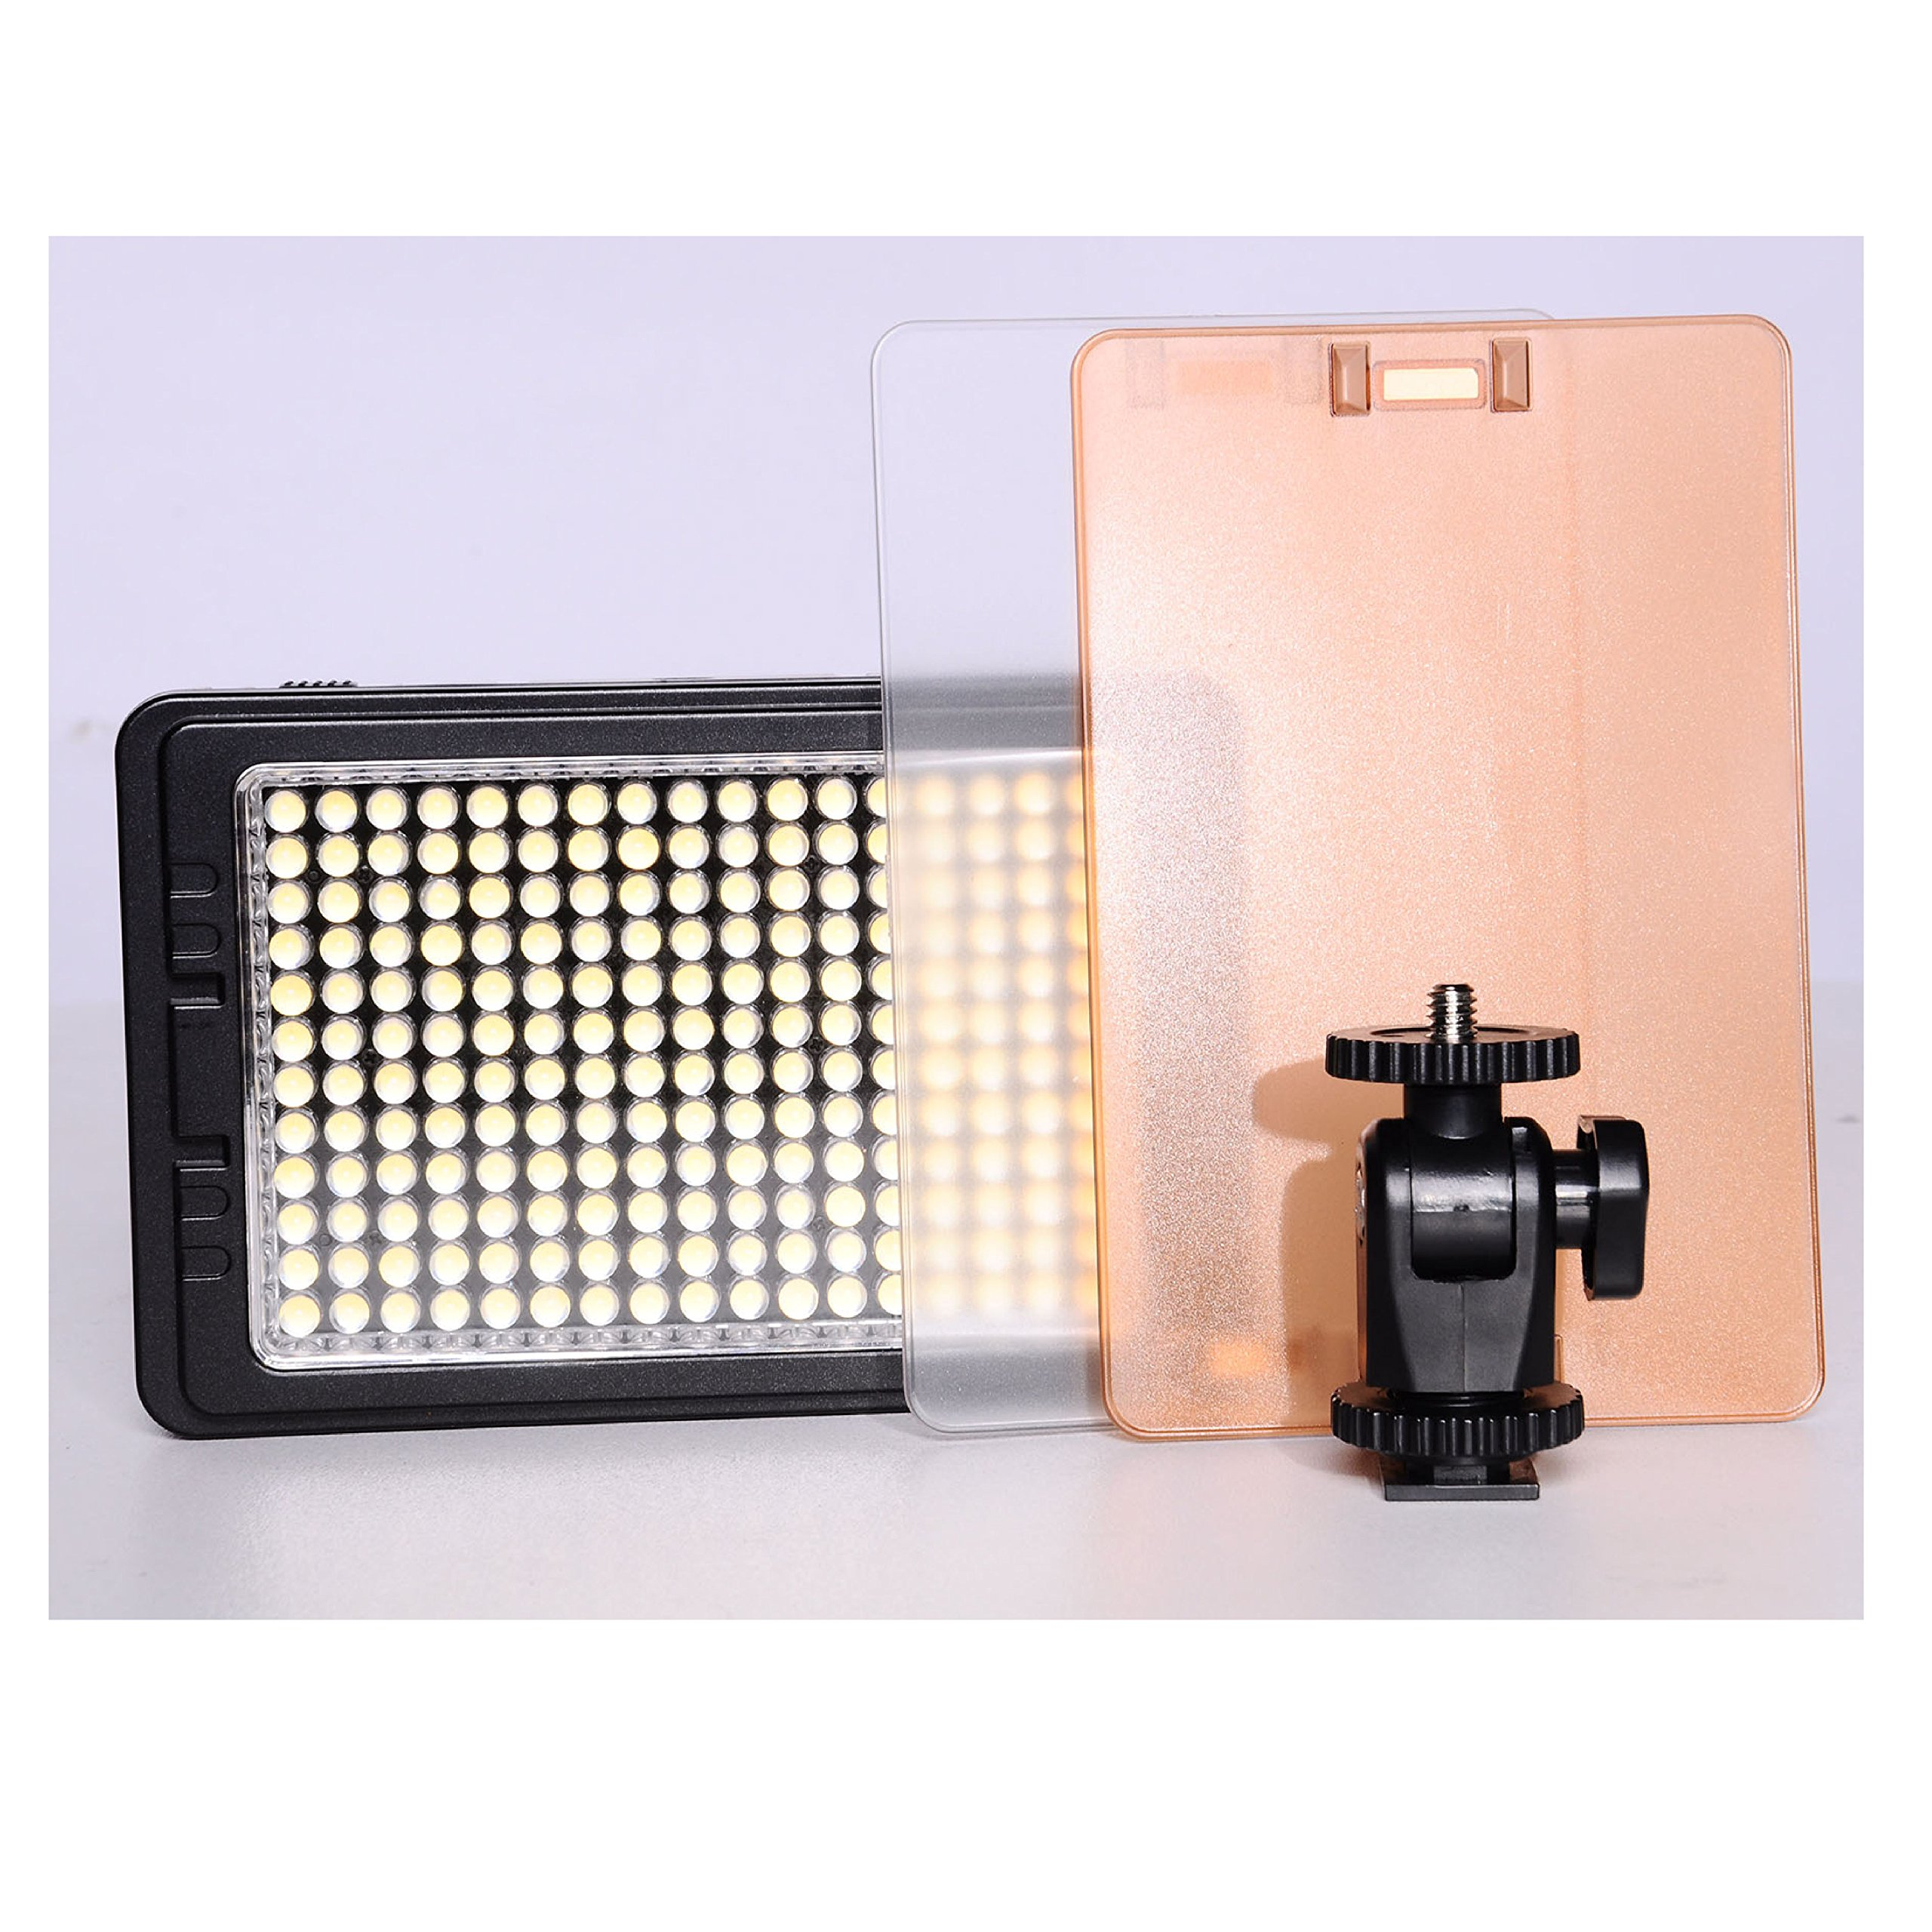 Tolifo Pt-C-160s 160 LEDs 10w Dimmable Daylight LED Camera / Camcorder Light Led Light Panel Mounted on Ball Head for Canon Nikon Pentax DSLR Camera Video Camcorder